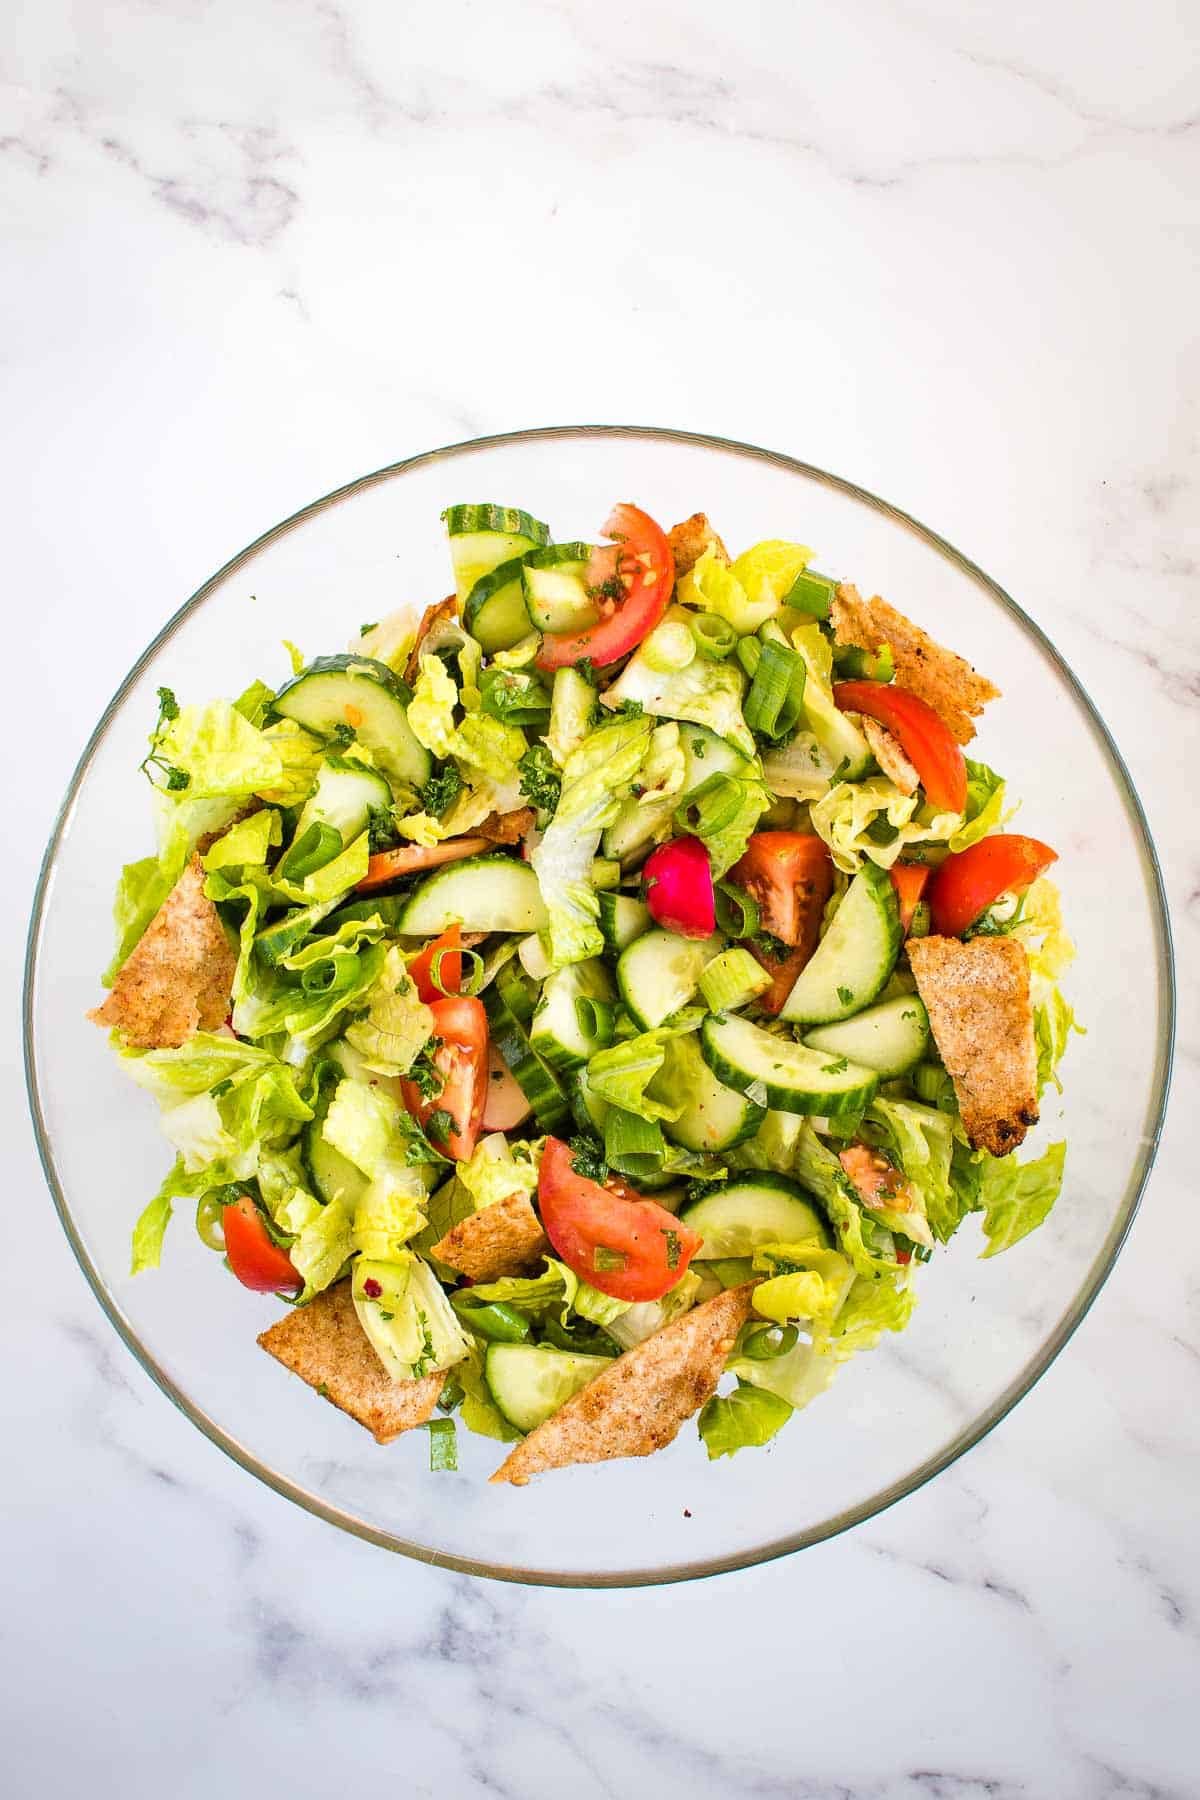 A bowl of Fattoush salad on a marble table.